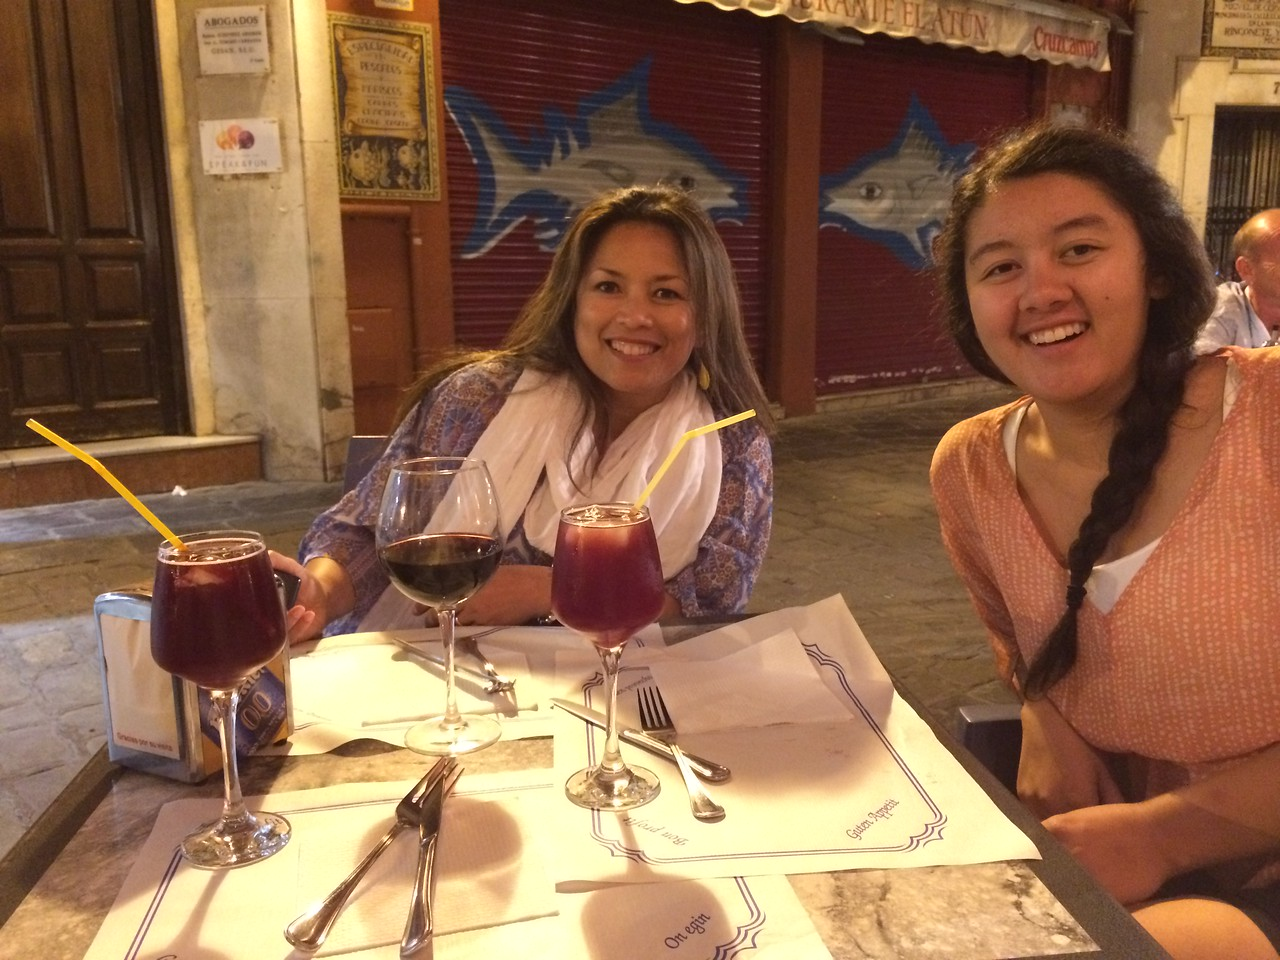 Dinner and drinks at Casa Belen restaurant. Vino tinto and Tinto Verano. Salud!